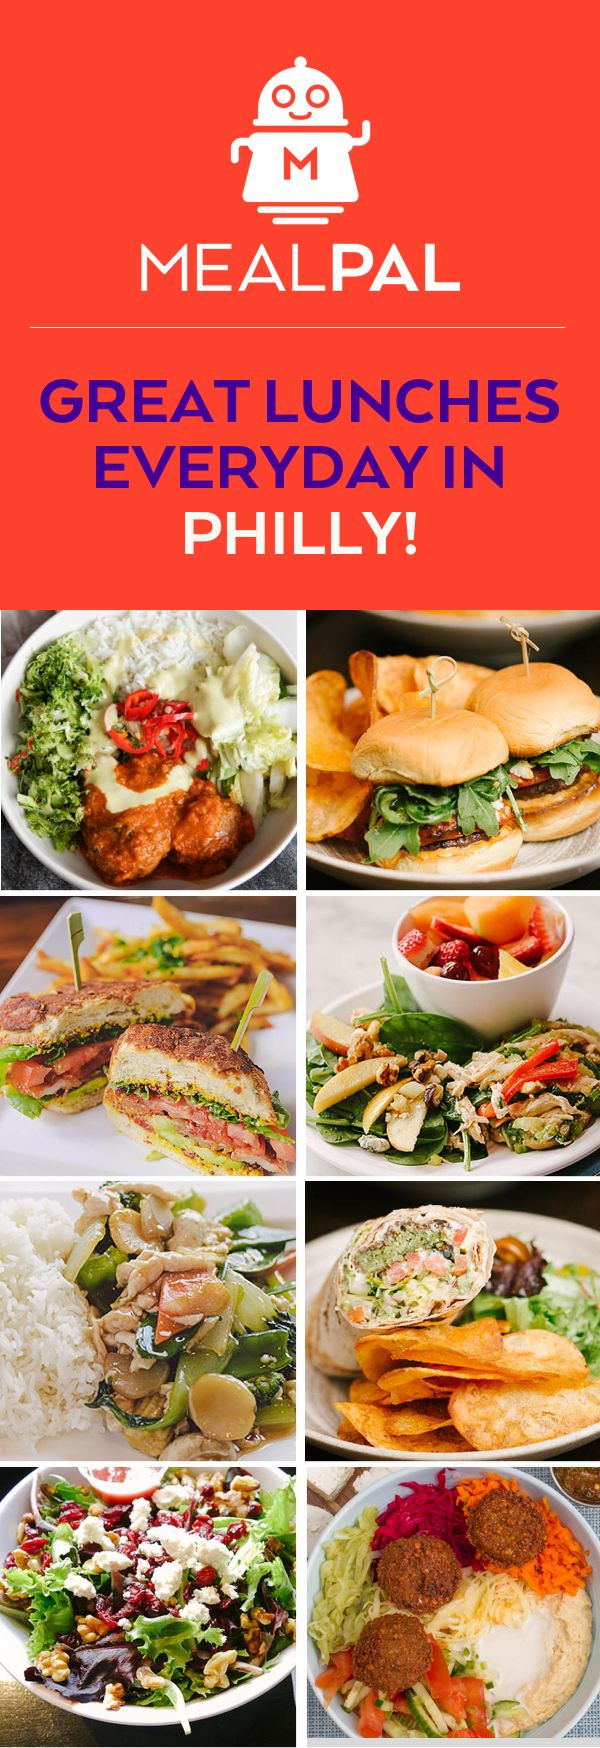 Get lunch for under $6 every day! We partner with BEST restaurants in Philly, including Milk House, Oishii Poke, Real Food Eatery, and more! Reserve lunch daily and skip the line when you pick up. MealPal is members only - request an invite now to skip the waitlist!